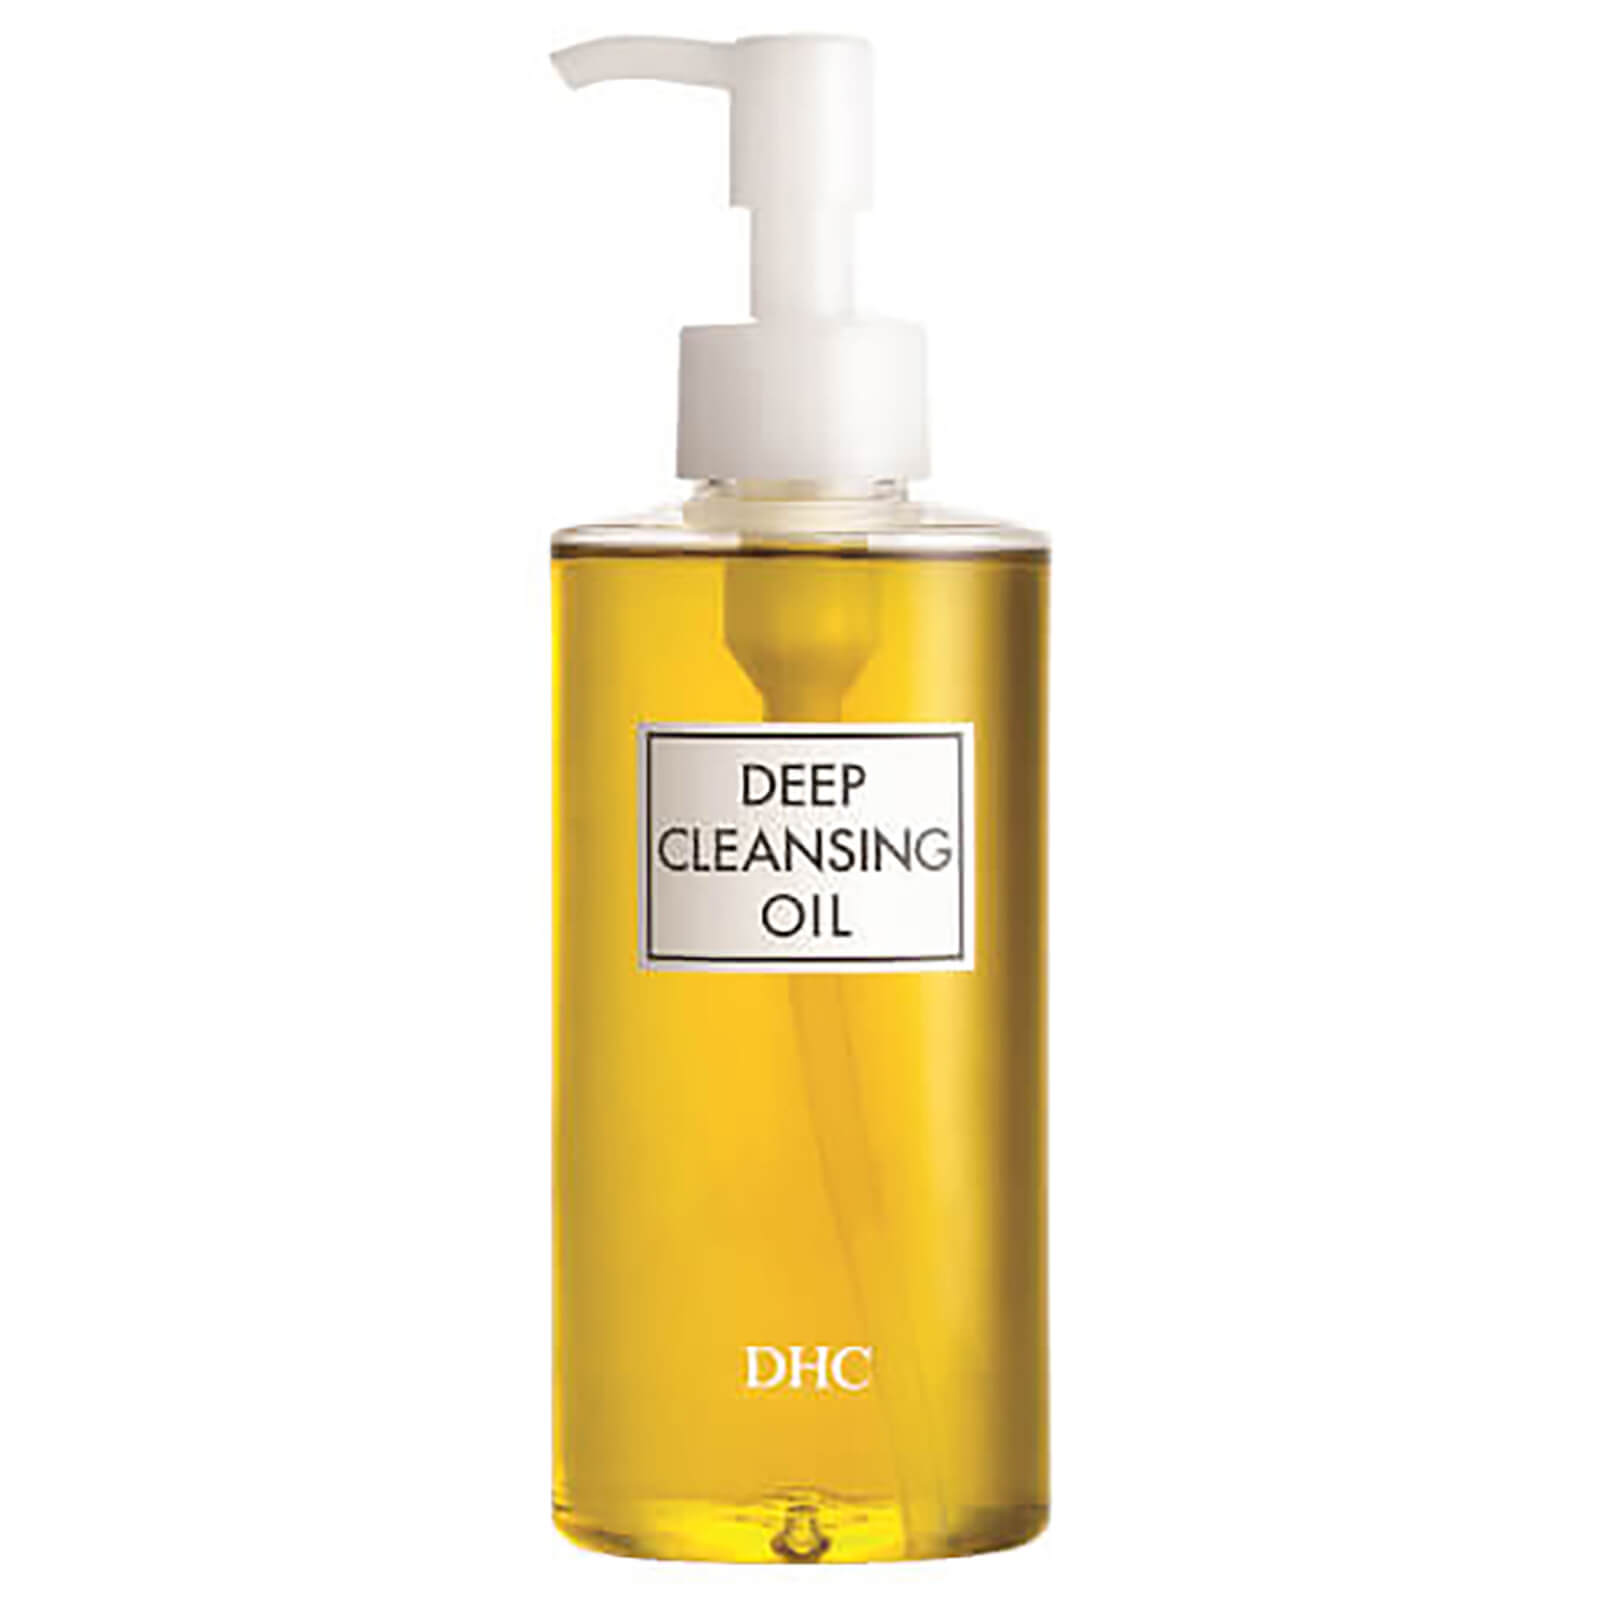 Dhc Deep Cleansing Oil Lookfantastic